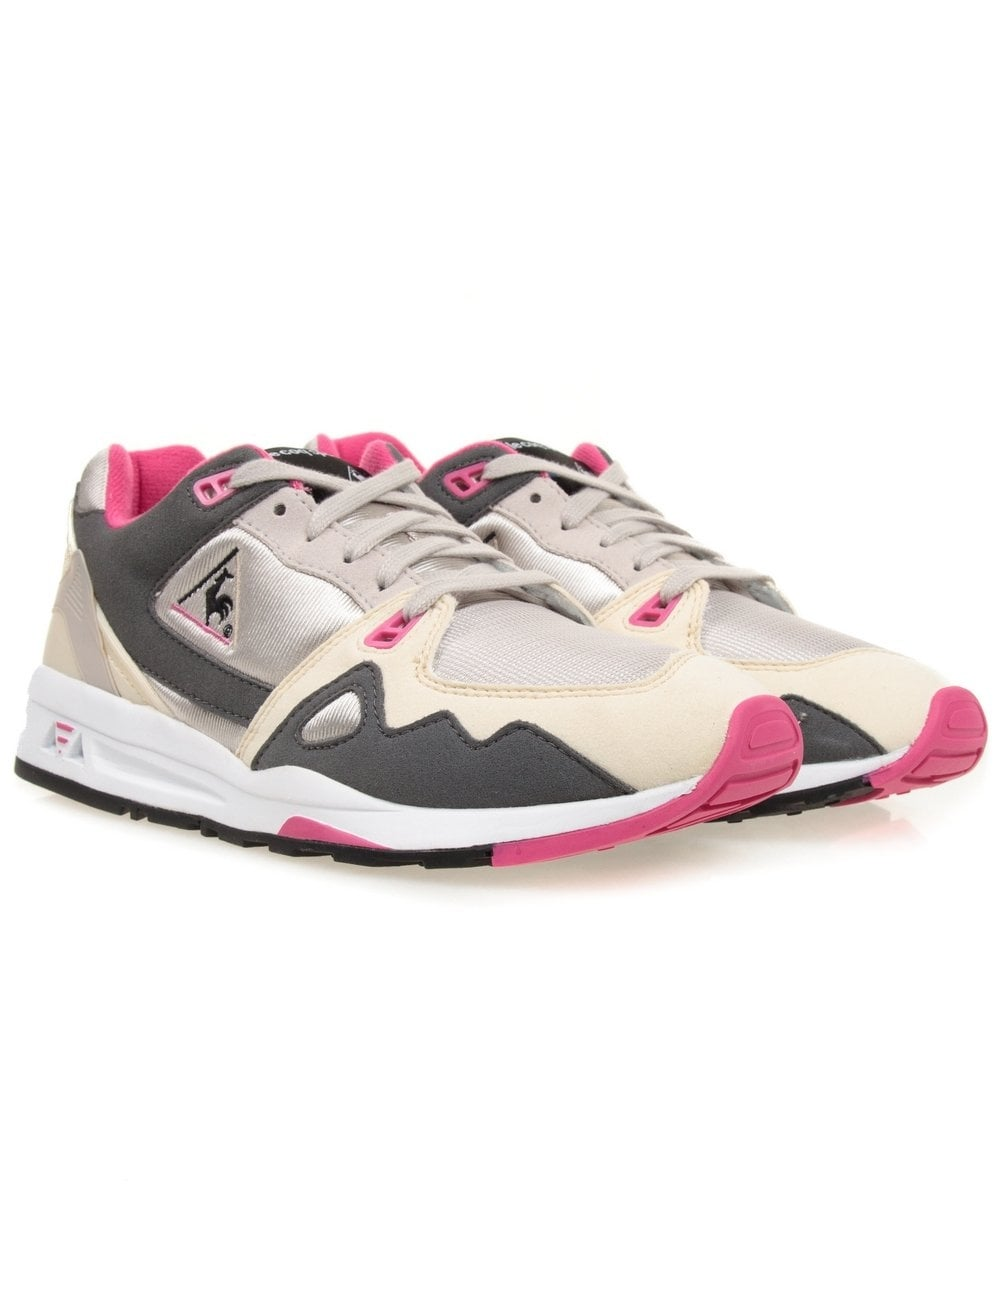 wholesale dealer 08cb0 7949f Le Coq Sportif R1000 Shoe - Silver Grey (Day   Night Pack)